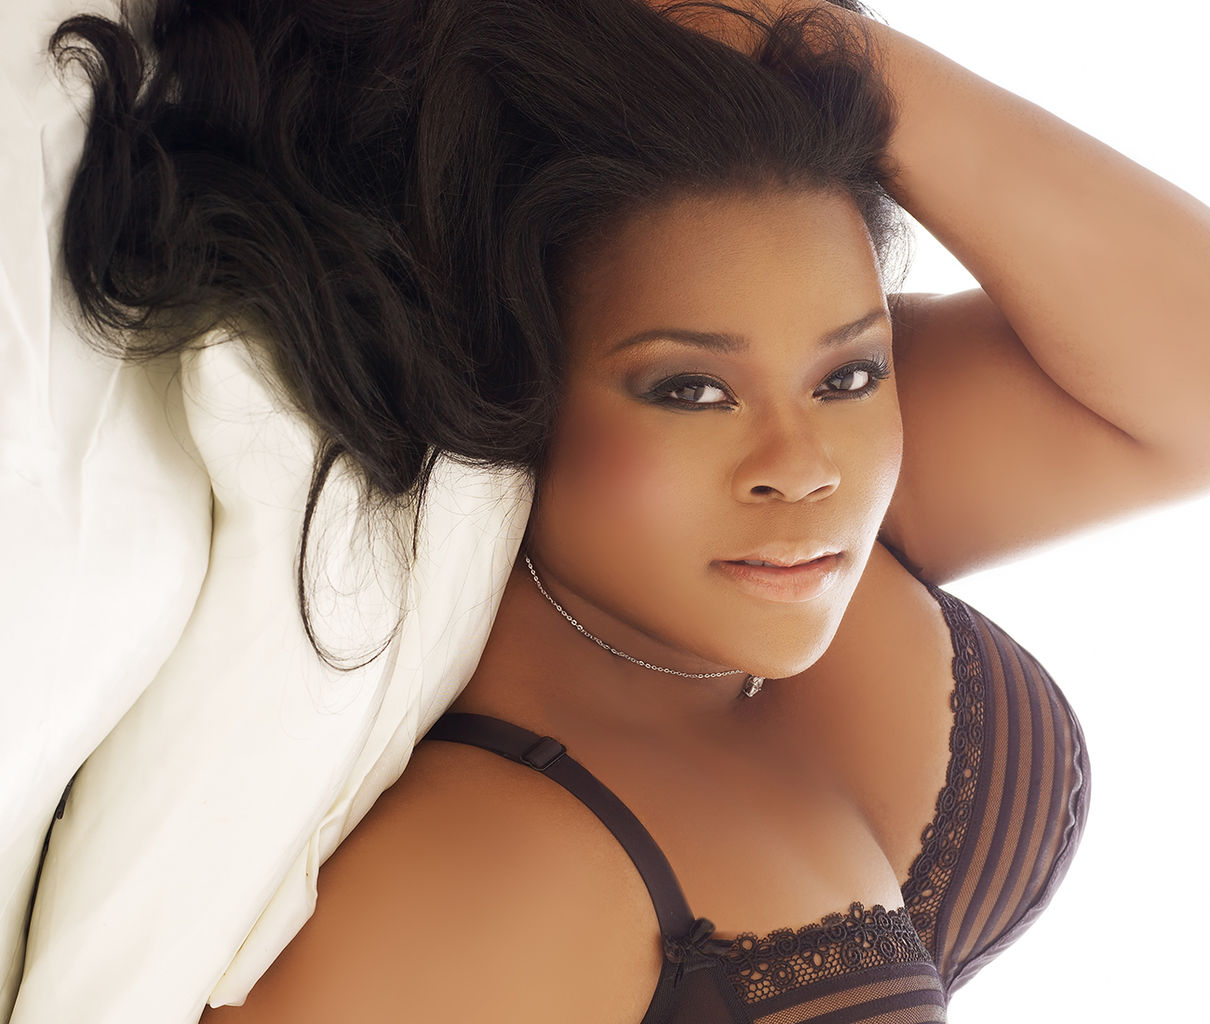 Plus size modeling jobs in new york 2 black models picture for Modeling jobs nyc